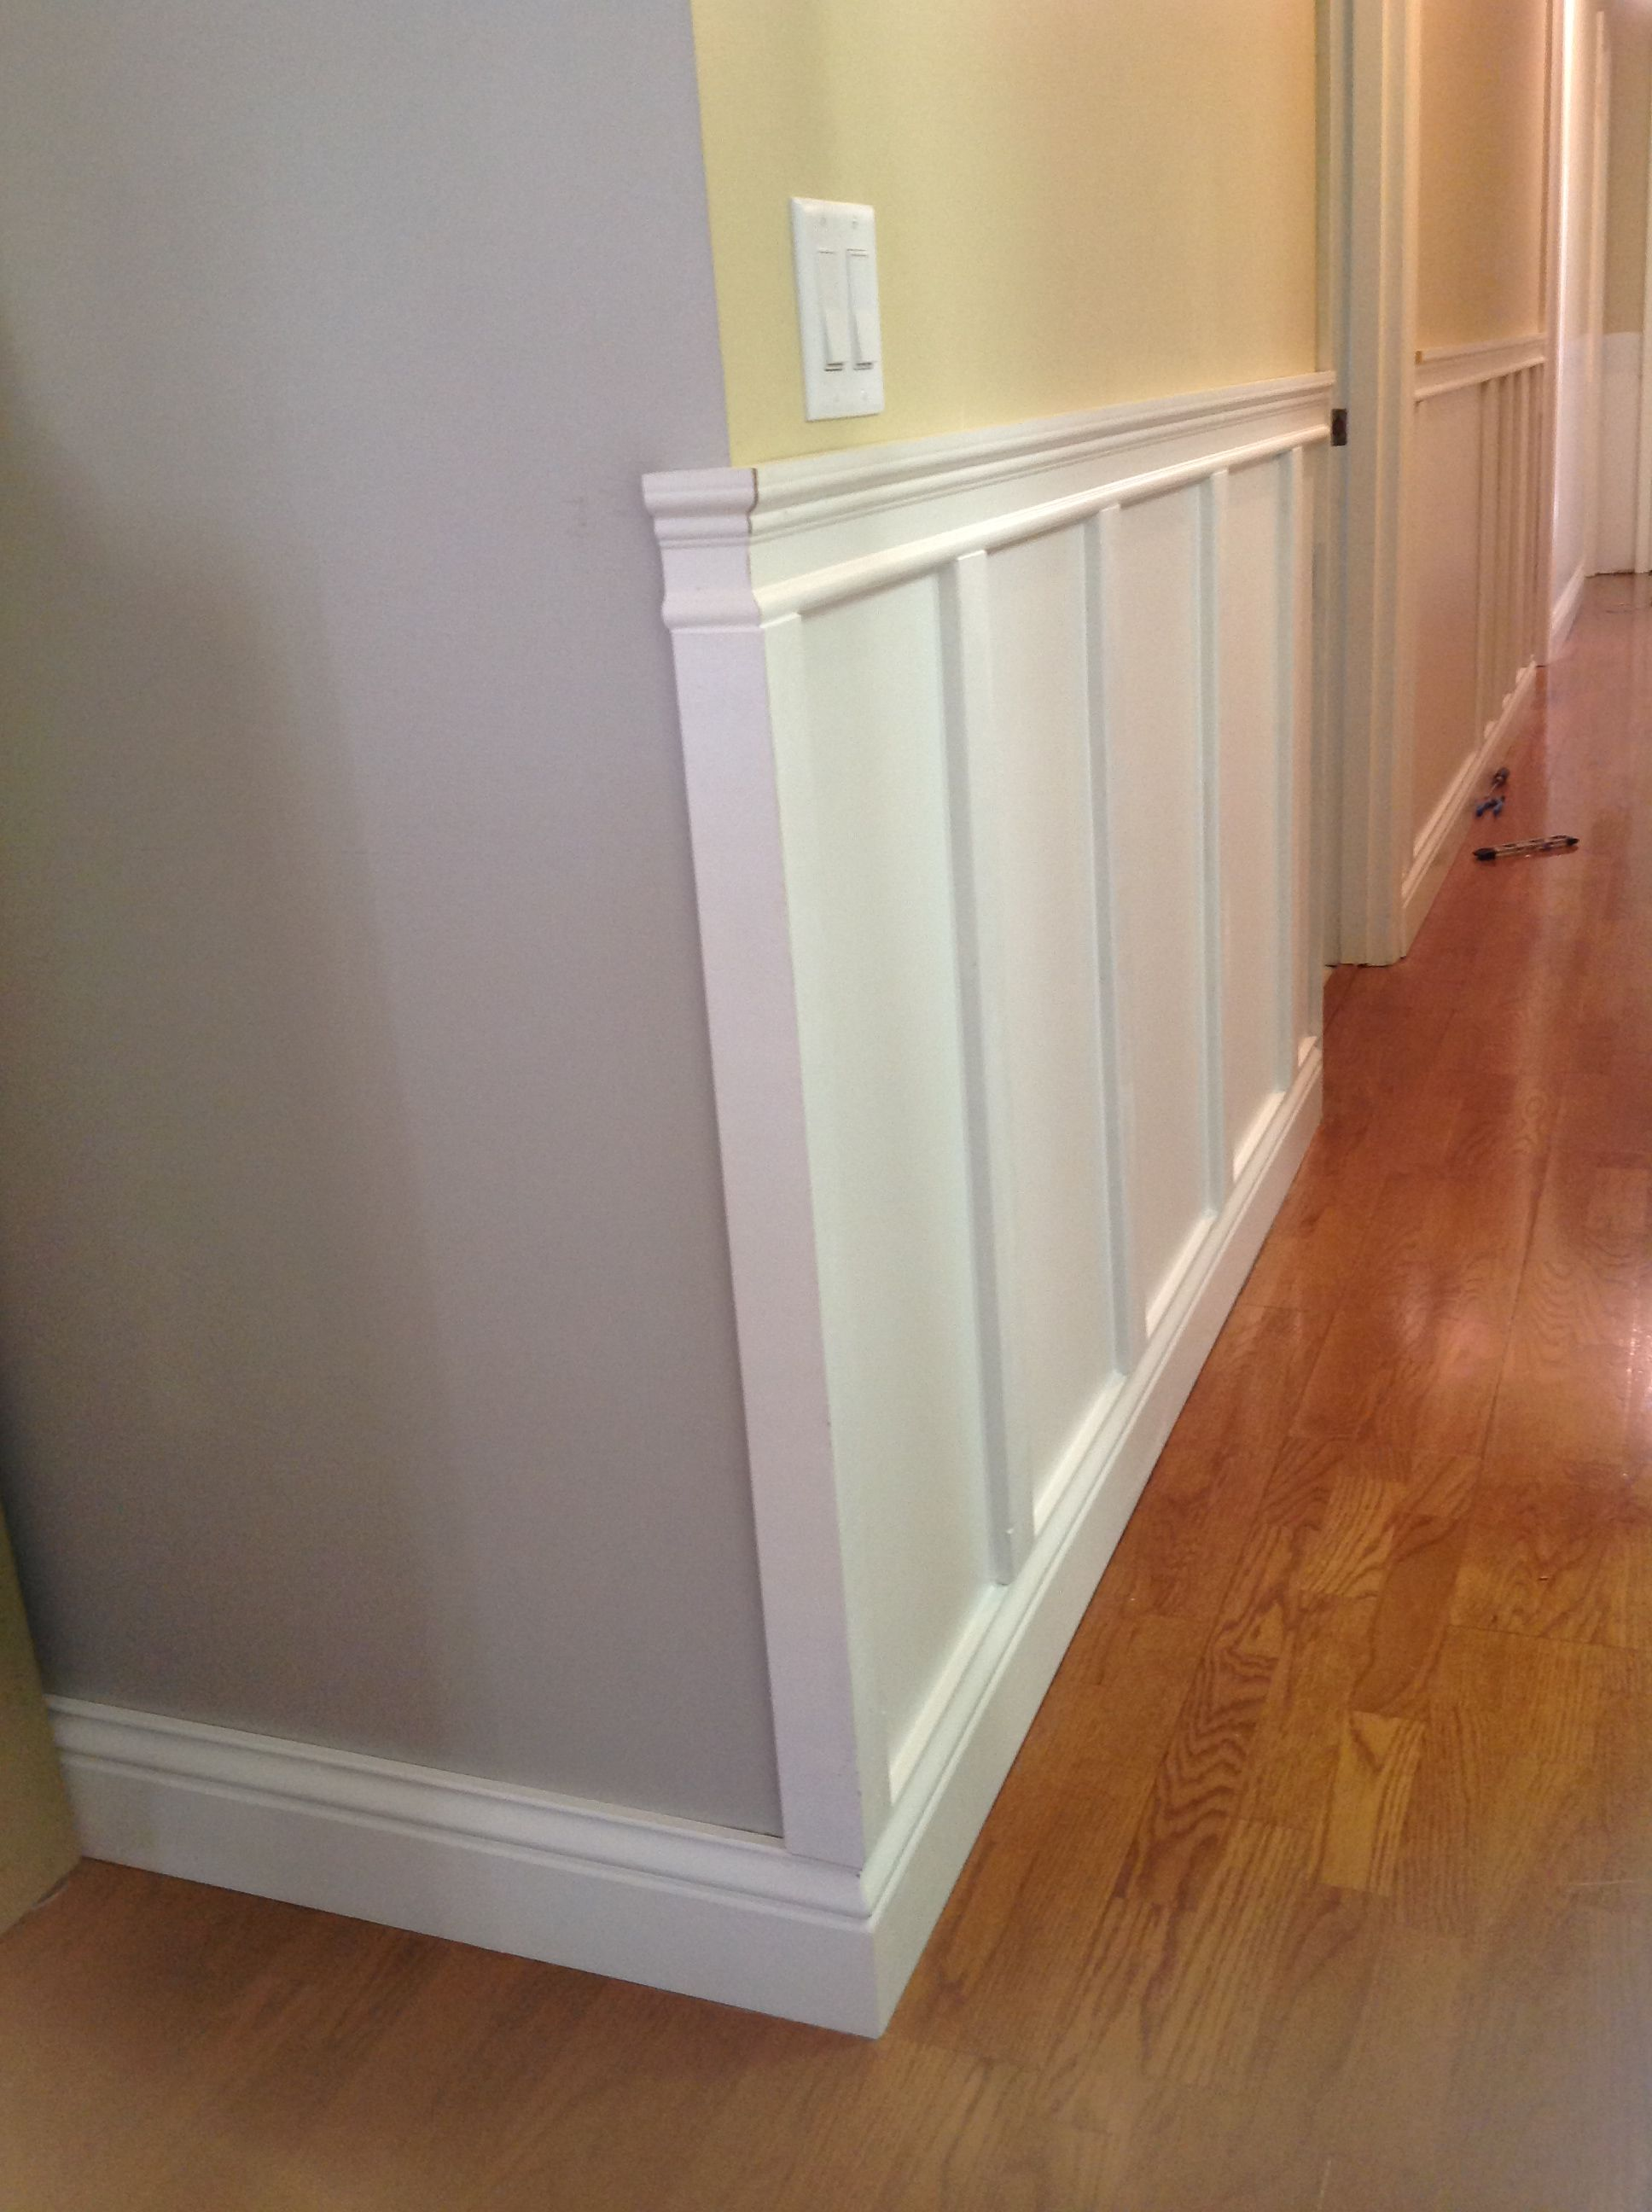 Pin By Joanne Mize On For The New House Baseboard Styles Wainscoting Styles Dining Room Wainscoting